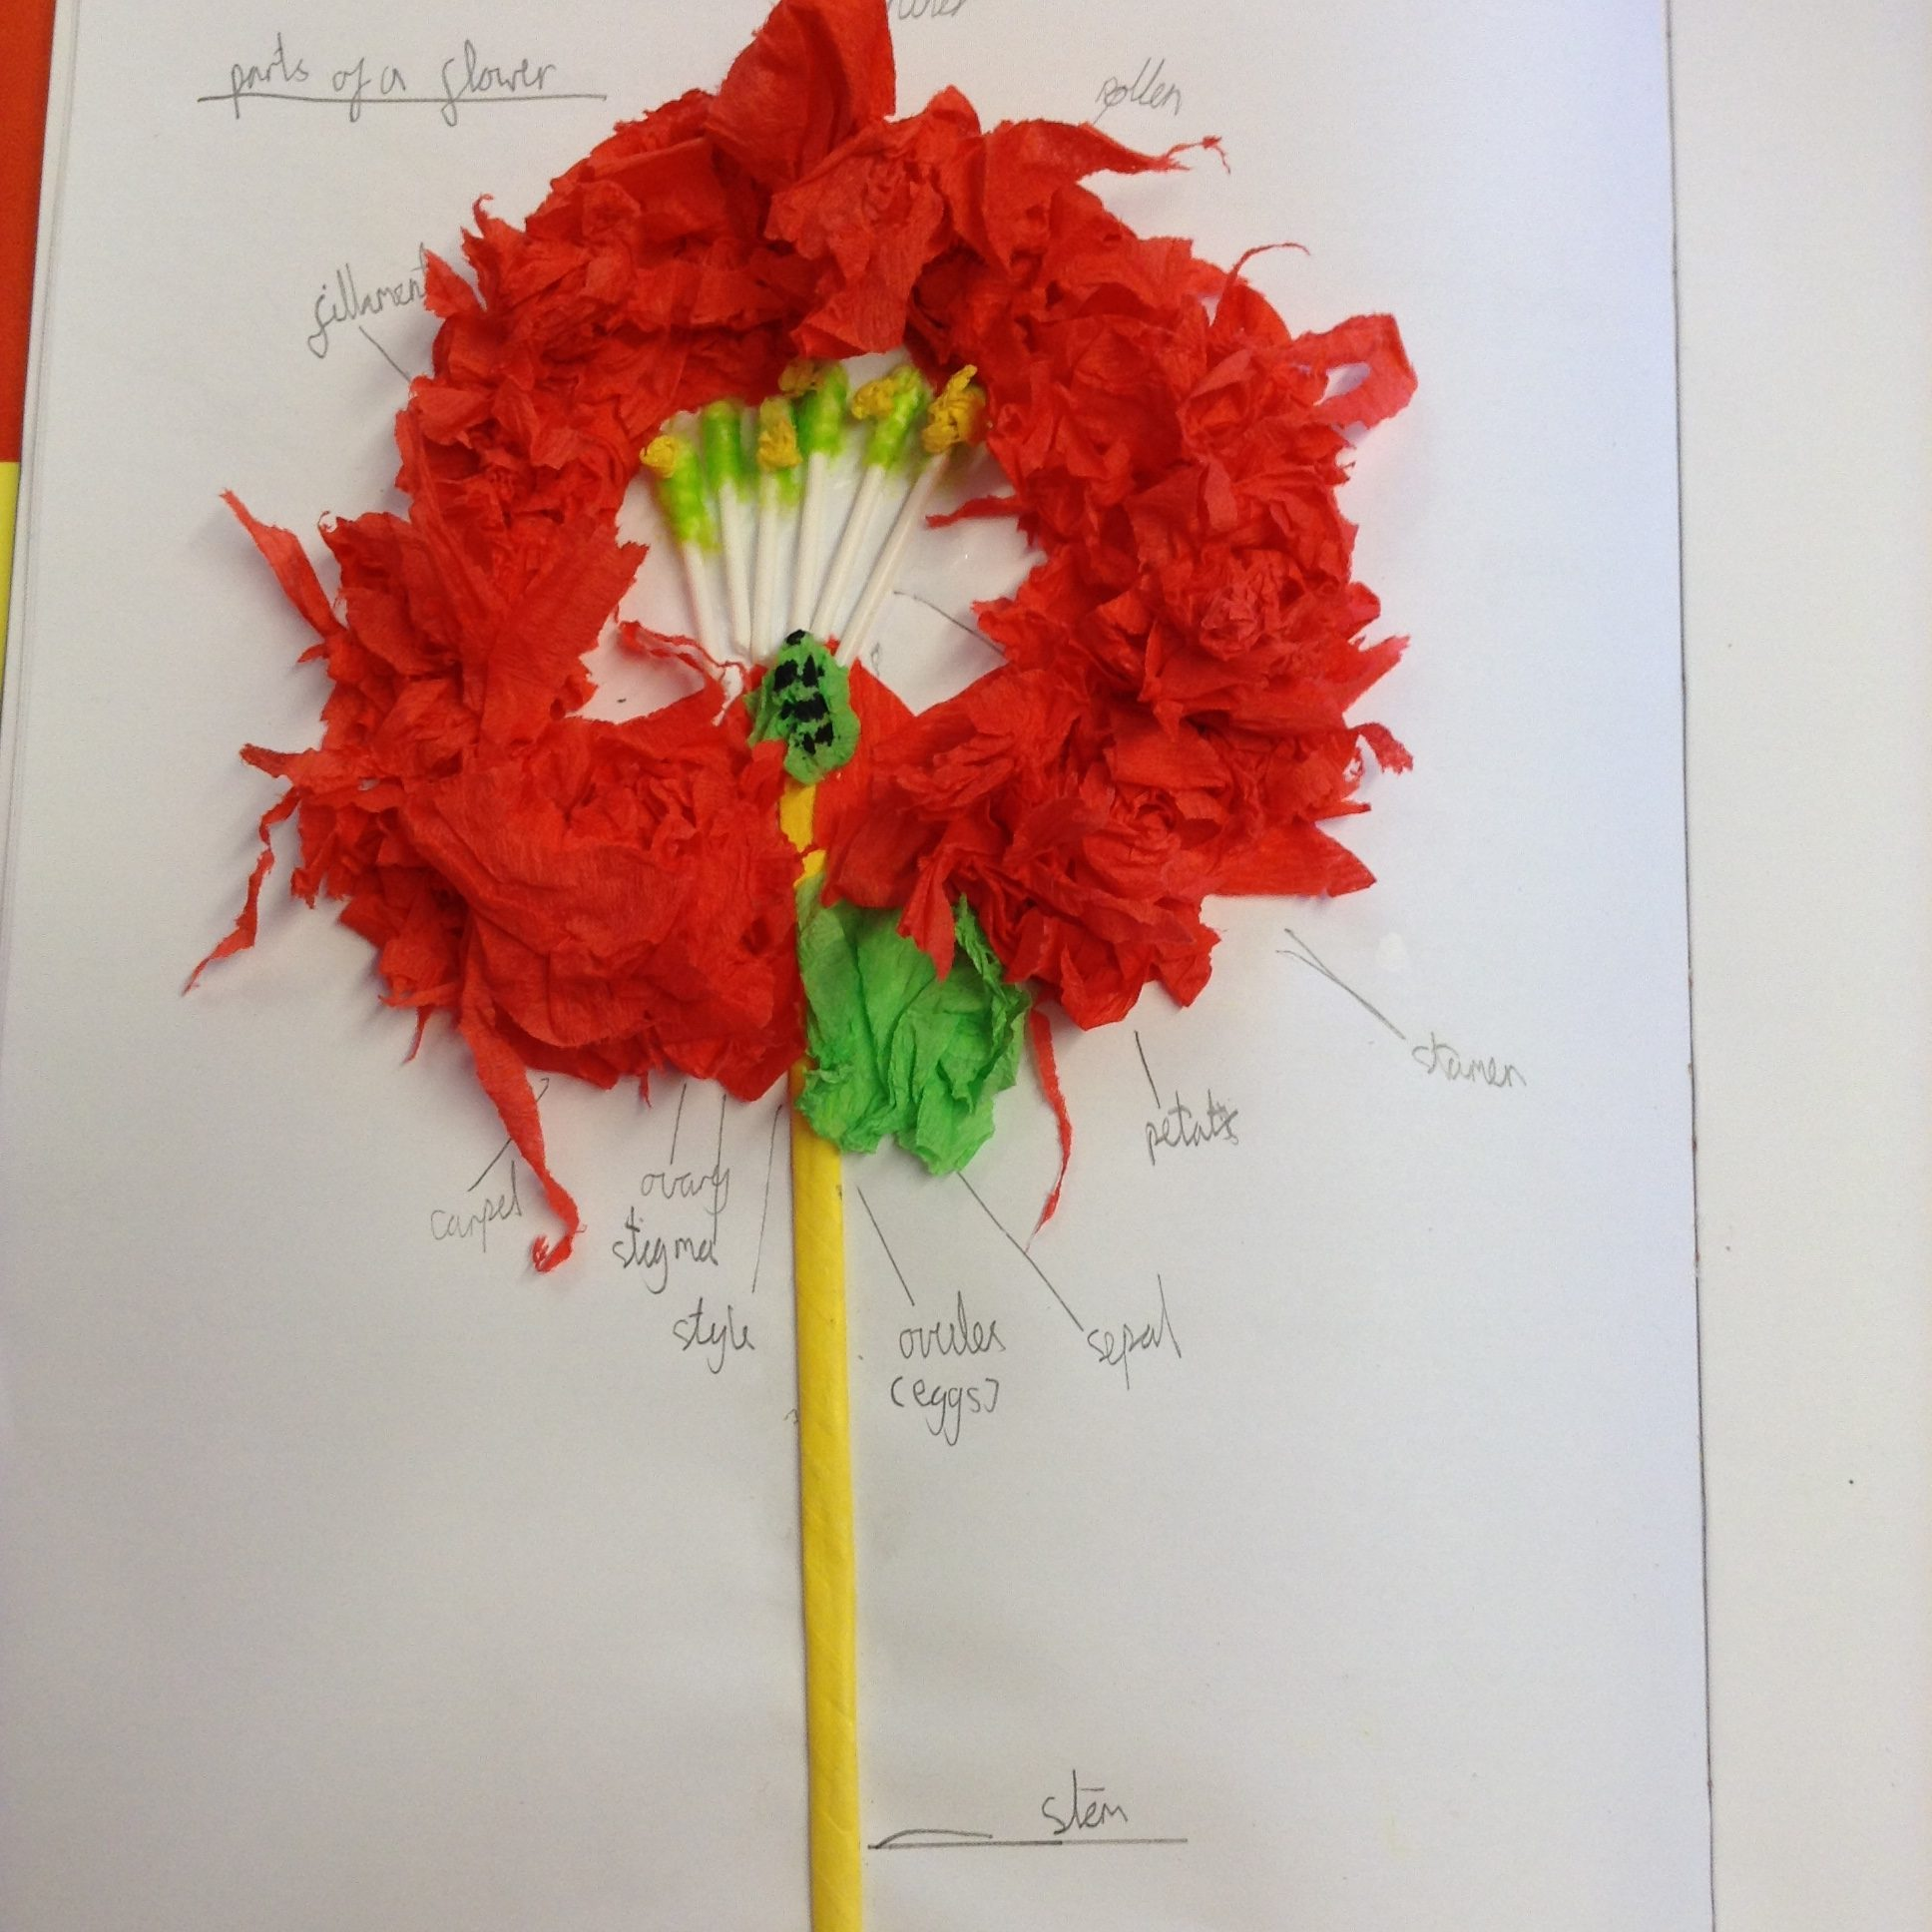 hight resolution of ash class have been working hard in class creating flower diagrams they used their capitalising muscles to ensure that every part of the flower was